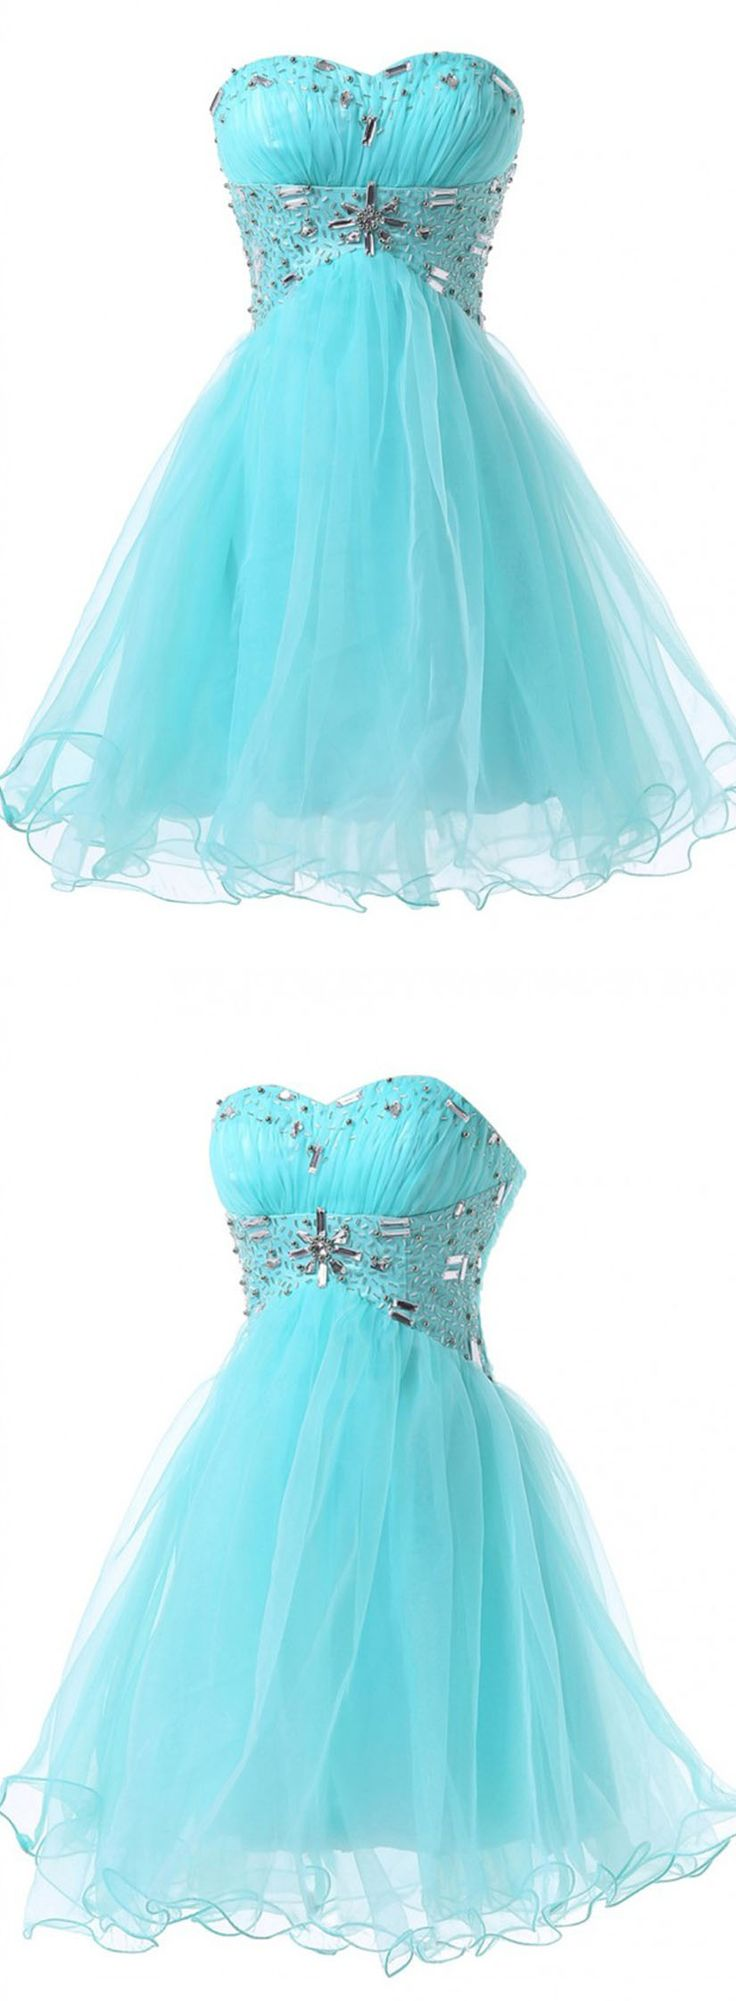 Modern Sweetheart Beading A-line Blue Short Prom Dresses Homecoming Dress